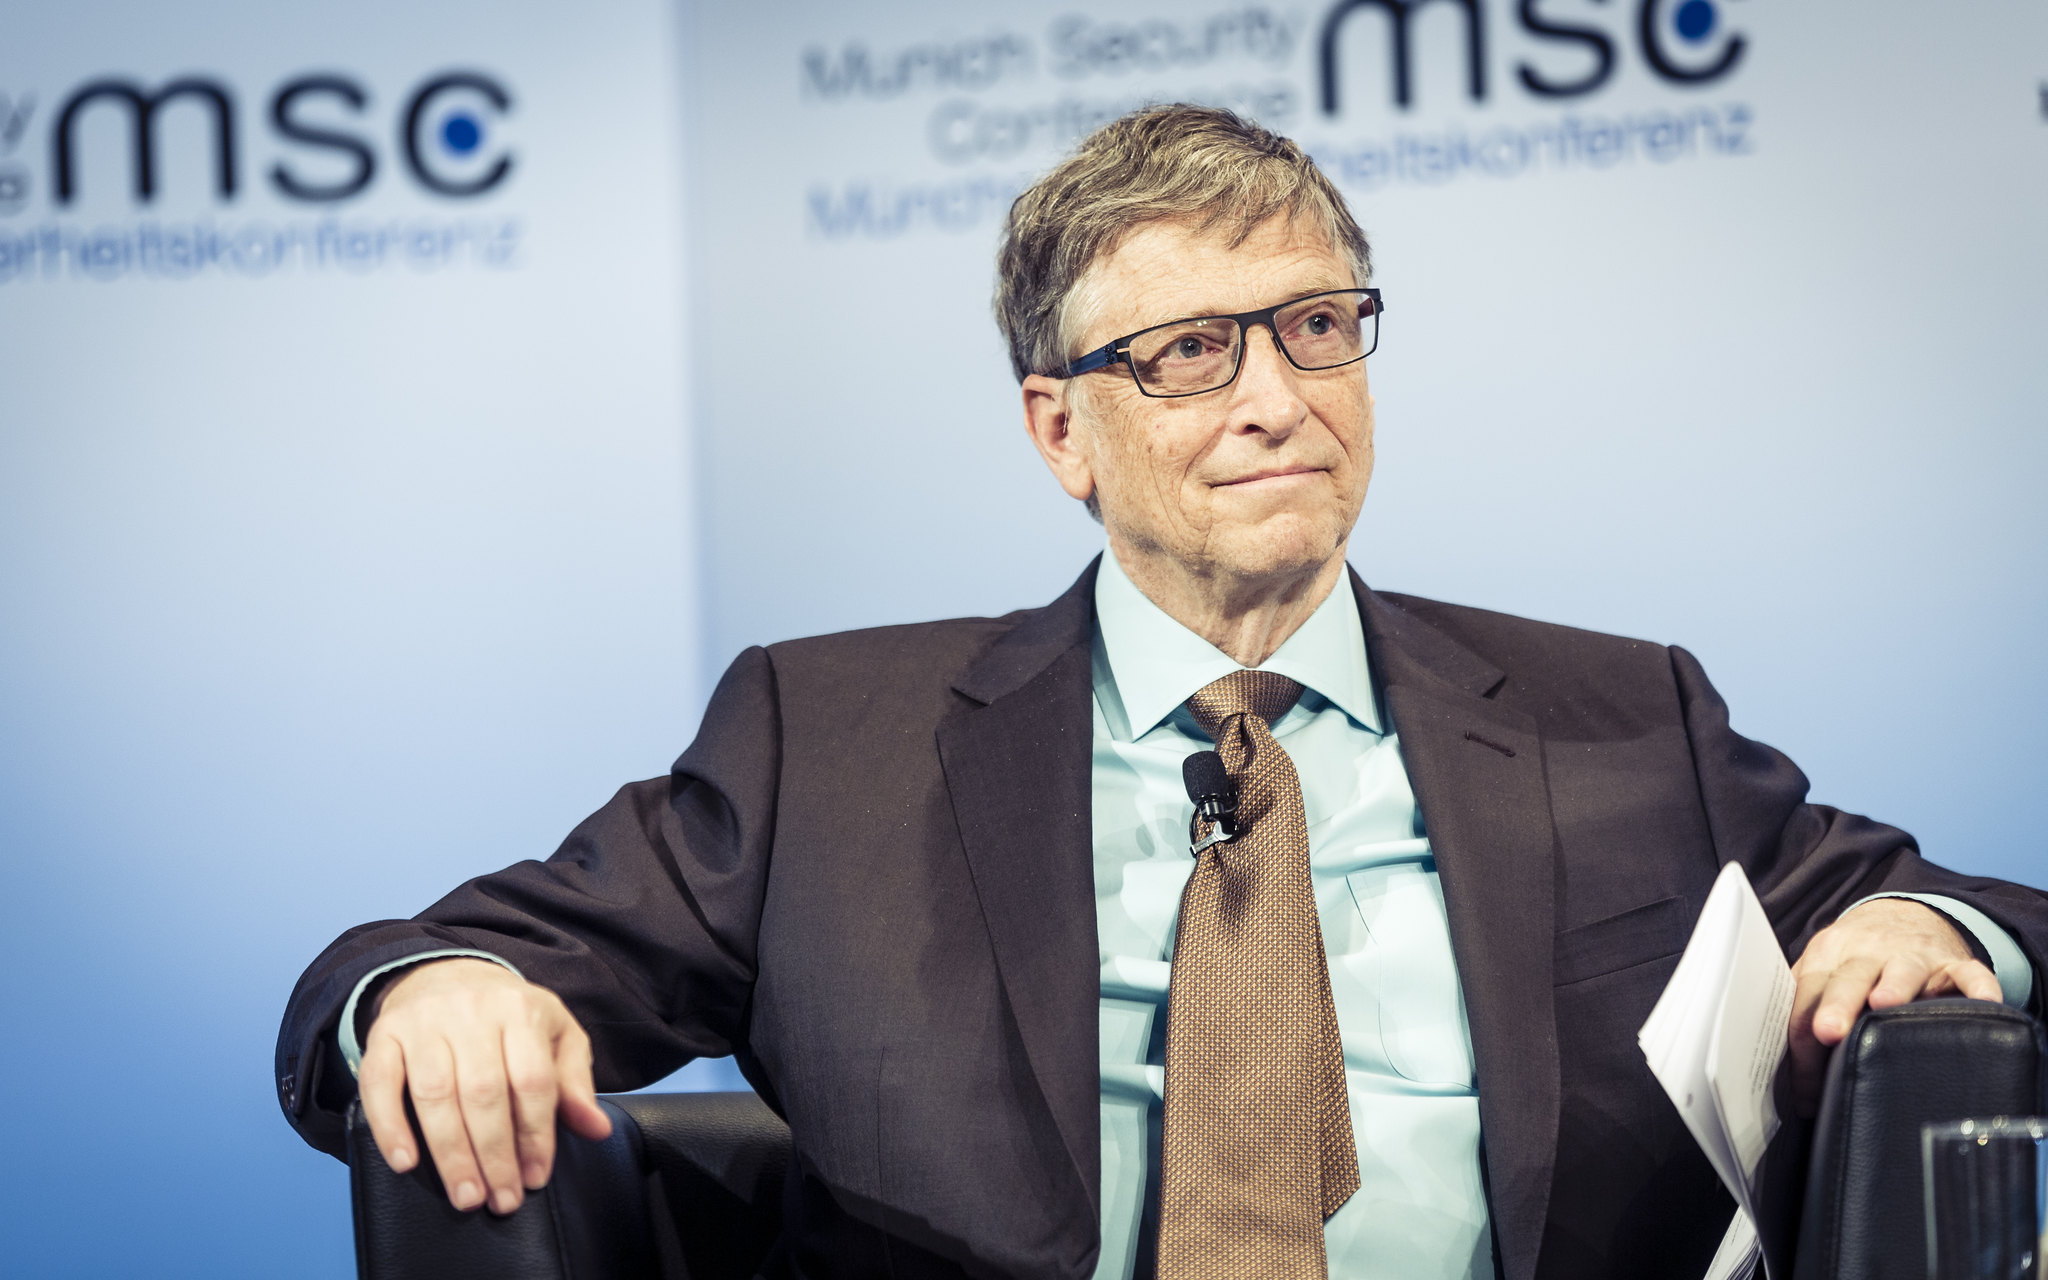 Bill Gates (Greg Rubenstein/https://www.flickr.com/photos/188027733@N06/49790335083/in/photolist-2iRNtXa-66NNXY-48nwzq-4p13Ry-DUGN1-4oZWhf-4oVX16-4oF1Hr-7yKF74-c4rYdb-6p5okR-7yKBZe-2gk4W-9rV9F-4oZVZQ-4oZXSs-4oZWEN-4oZViC-4oVXFH-4oVRHZ-4oVXkM-G8wEL-2dkSuvi-n9nC9k-yPEh7-8vFMRh-6cfcoE-2kPboP-5MM17t-DUf1k-2nqk7-5tL68M-bWuj7o-7WYH1m-3qAFNz-DUGNa-4vU22T-4vacJm-sff3N-abSej4-VuRNjr-6UapKn-4ntTLj-PnB6e-ezzm2V-3c1v1v-NbX3t-J8jccd-7z814x-5Xu8av)